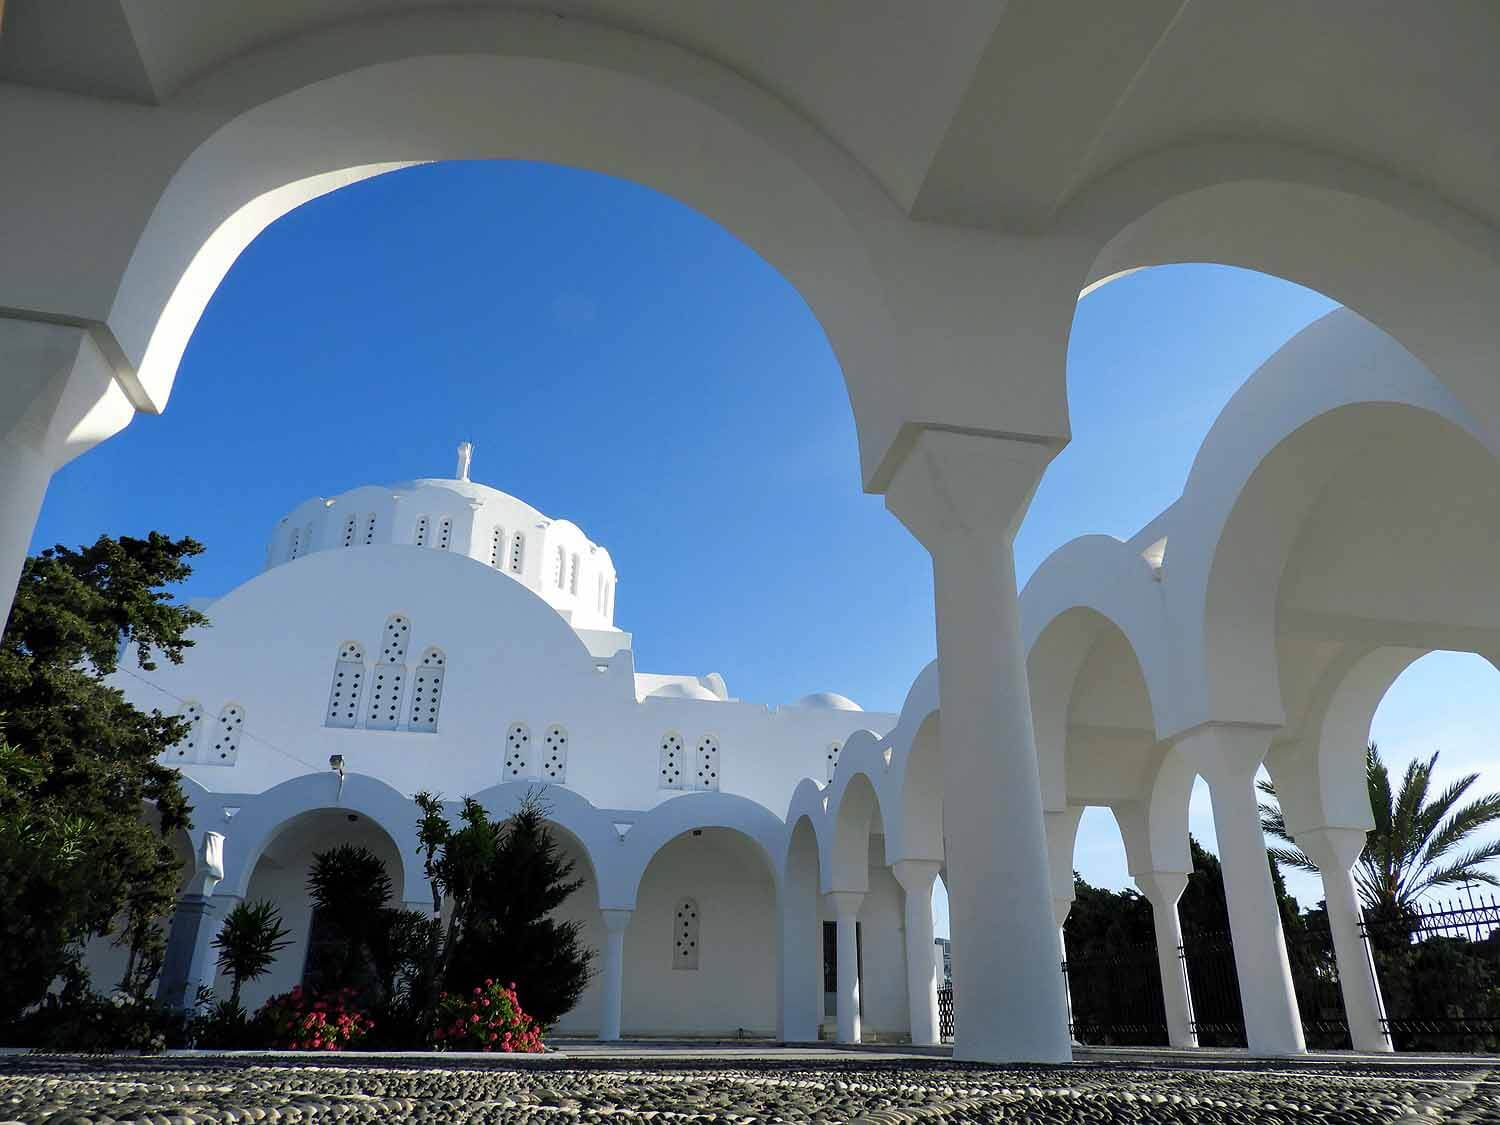 greece-santorini-fira-orthodox-metropolitan-cathedral-arches.jpg